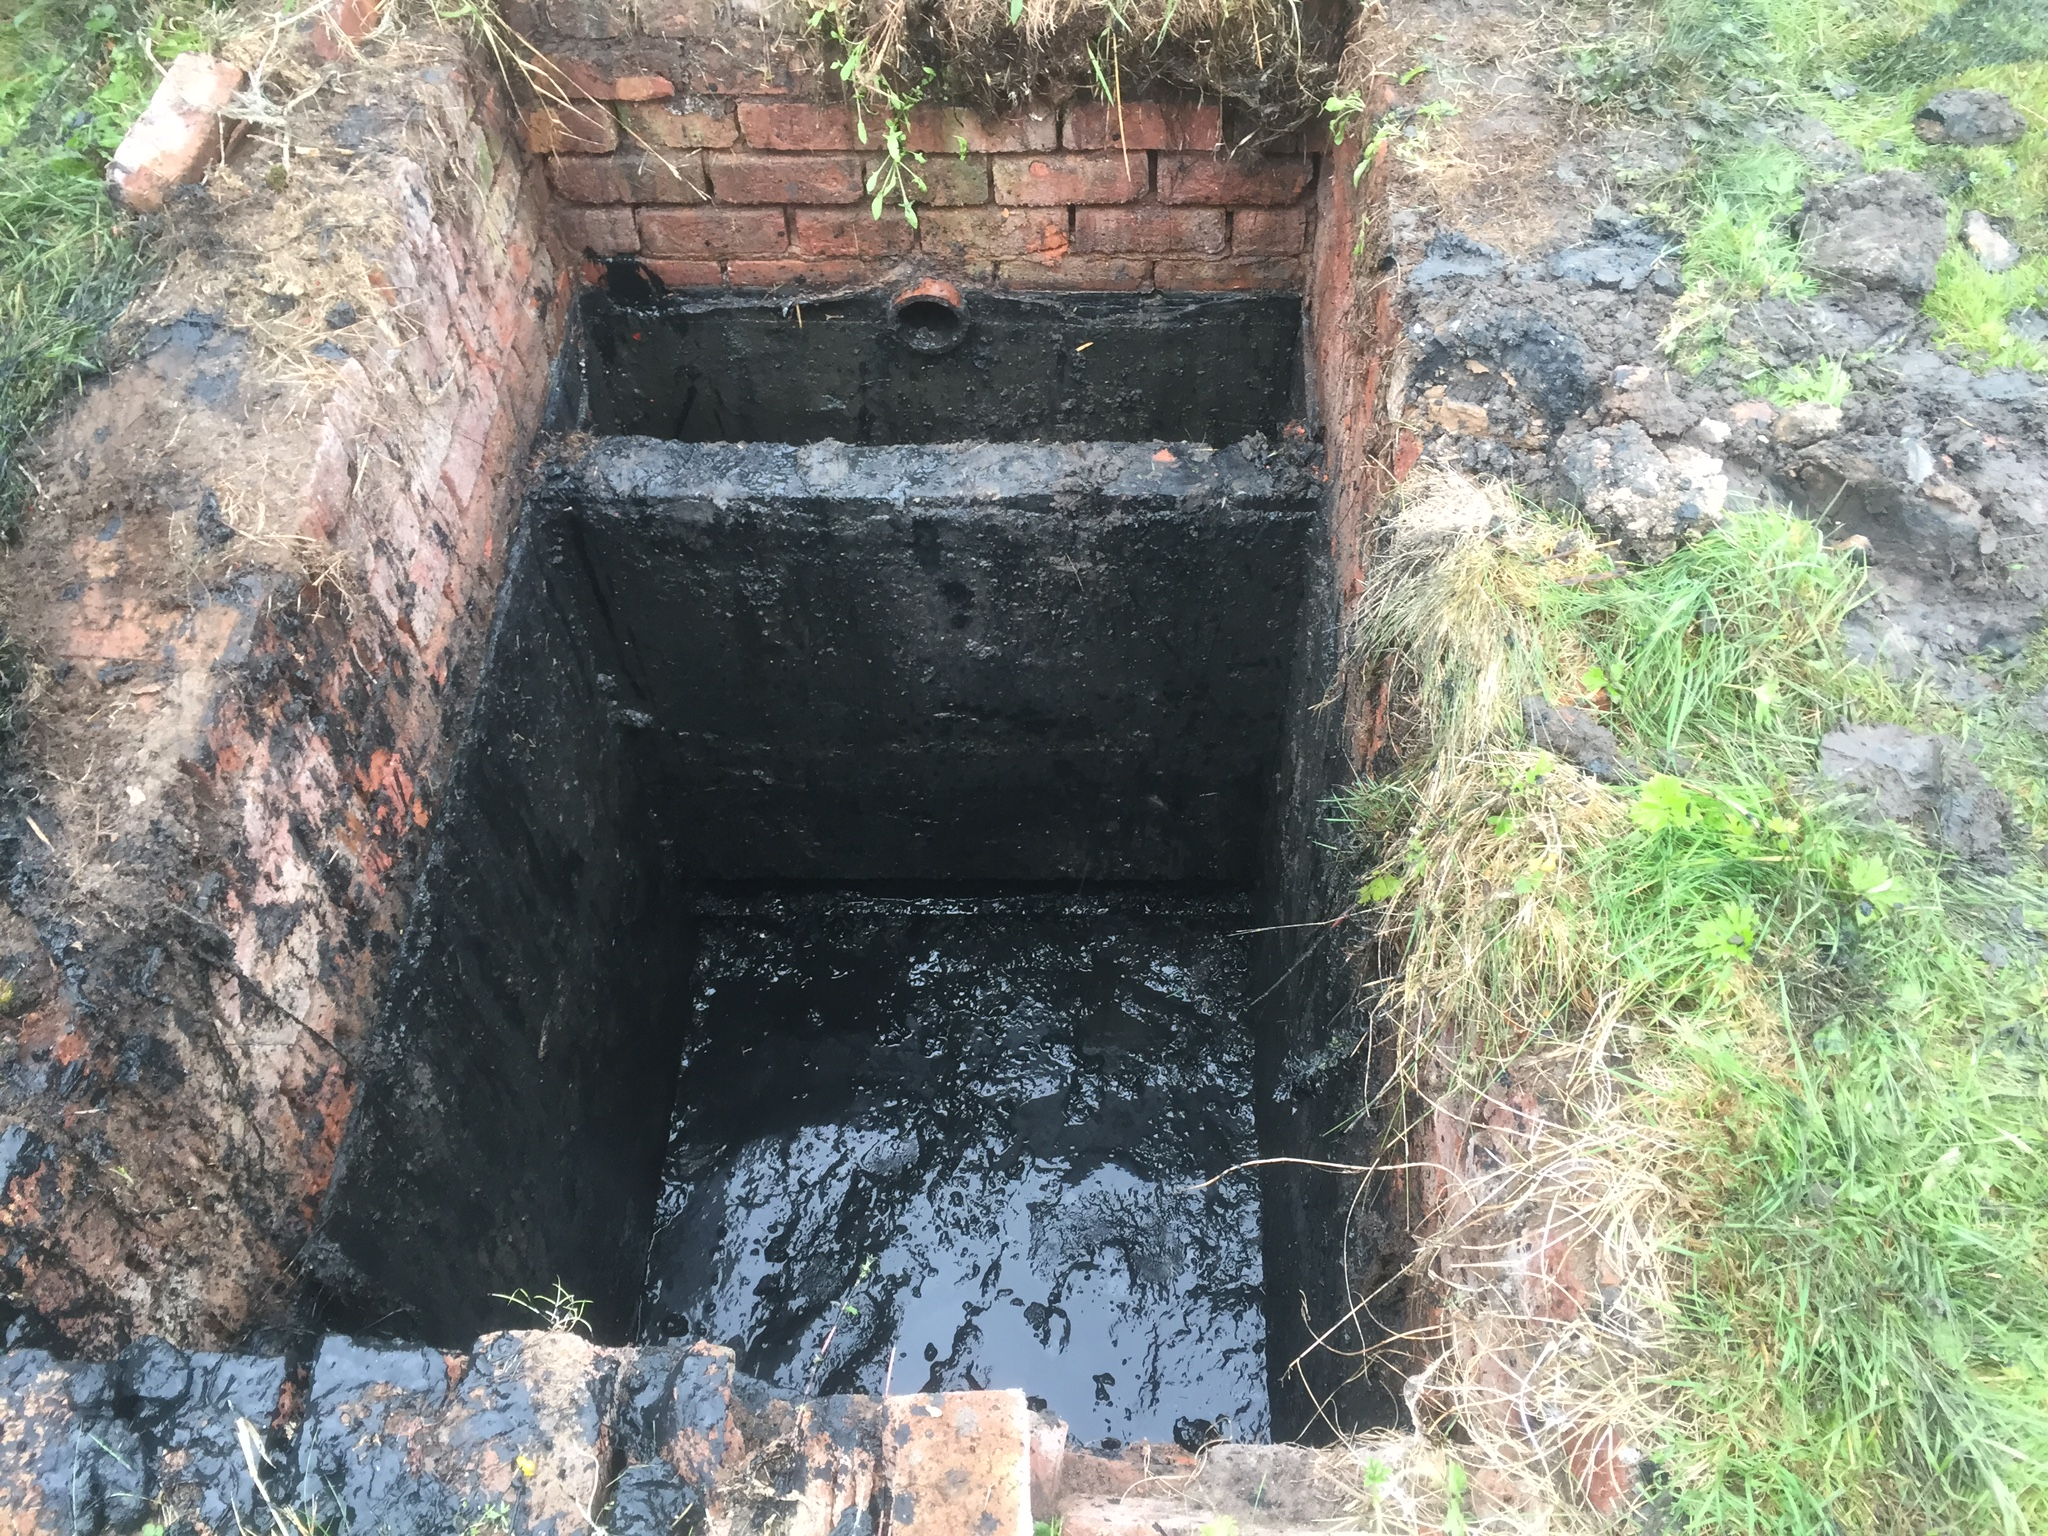 Septic tank inspection chamber repair rufford pjc for Septic tank designs